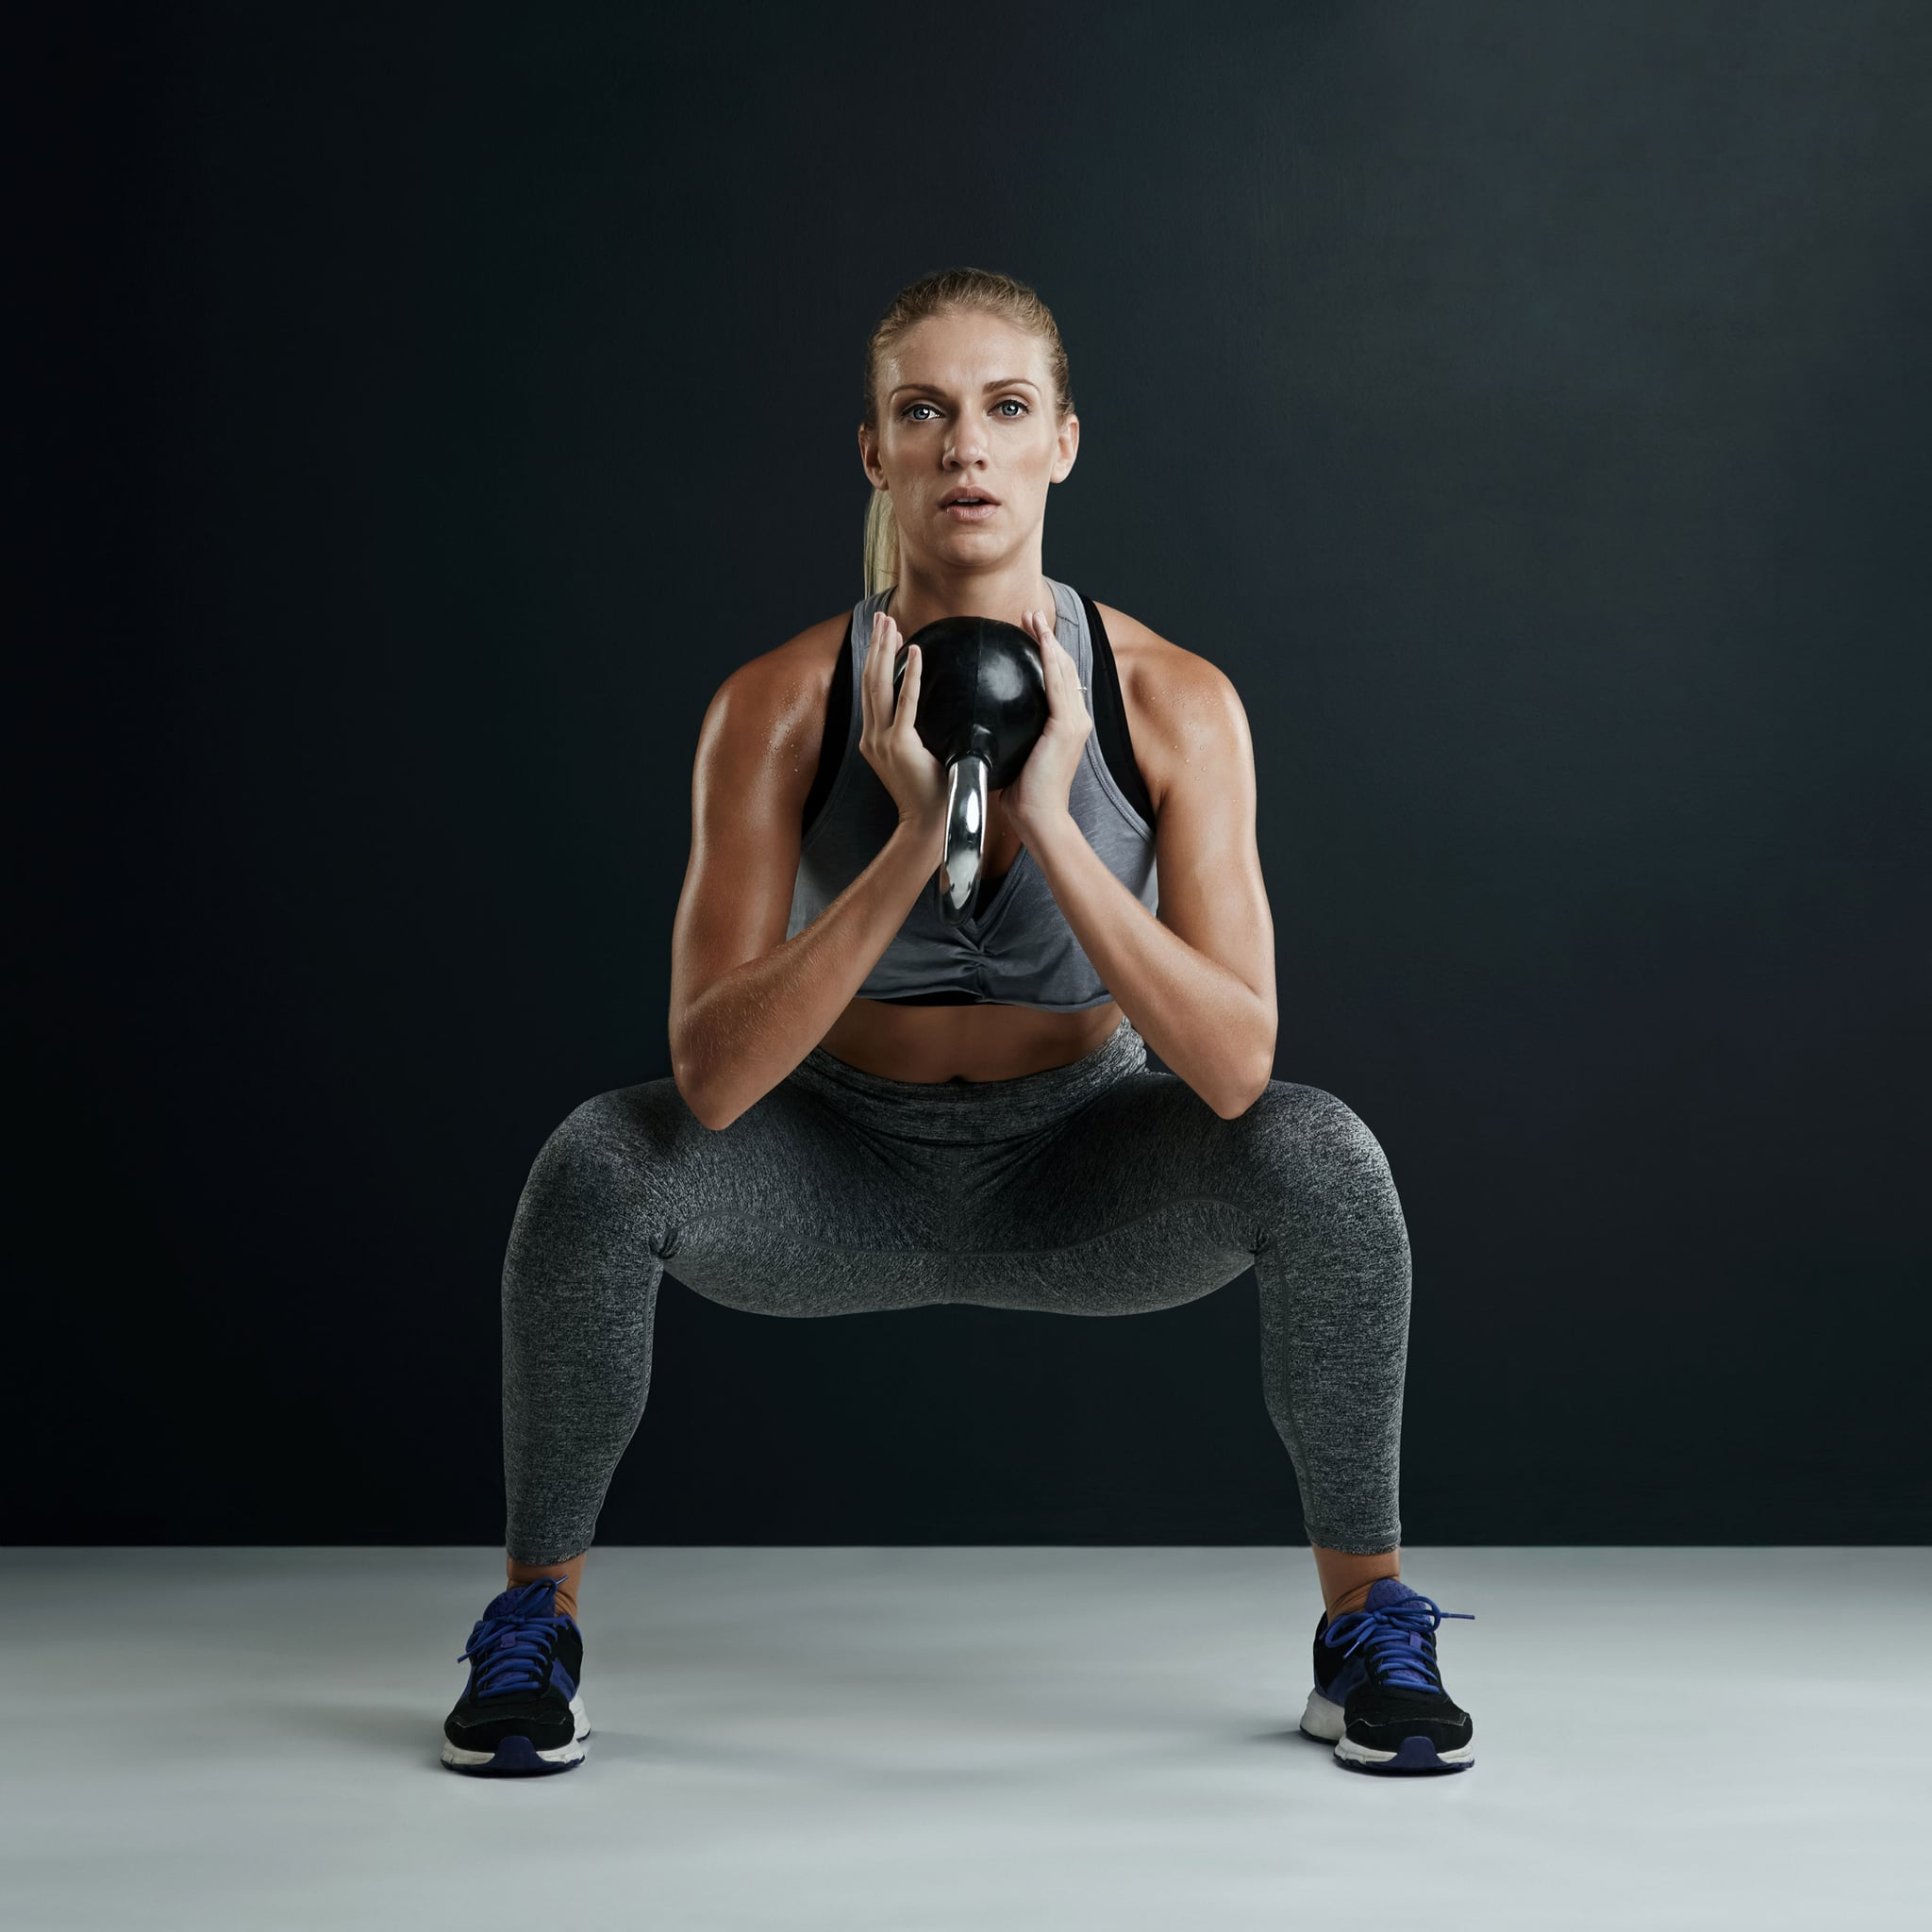 Want to Grow Your Booty? Grab 1 Kettlebell For This Simple Yet Intense Move